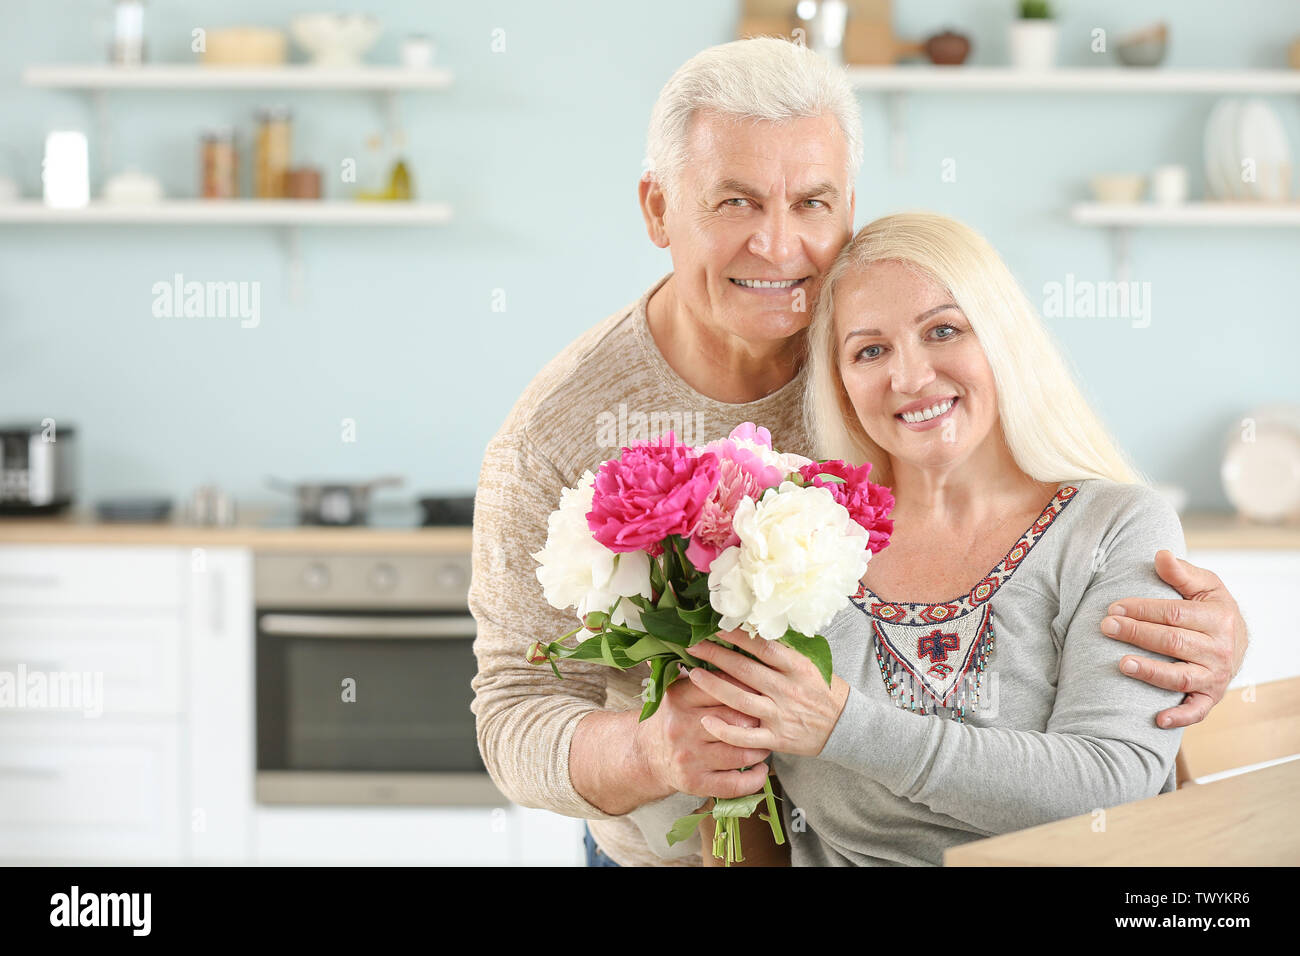 Portrait of happy mature couple with flowers in kitchen - Stock Image